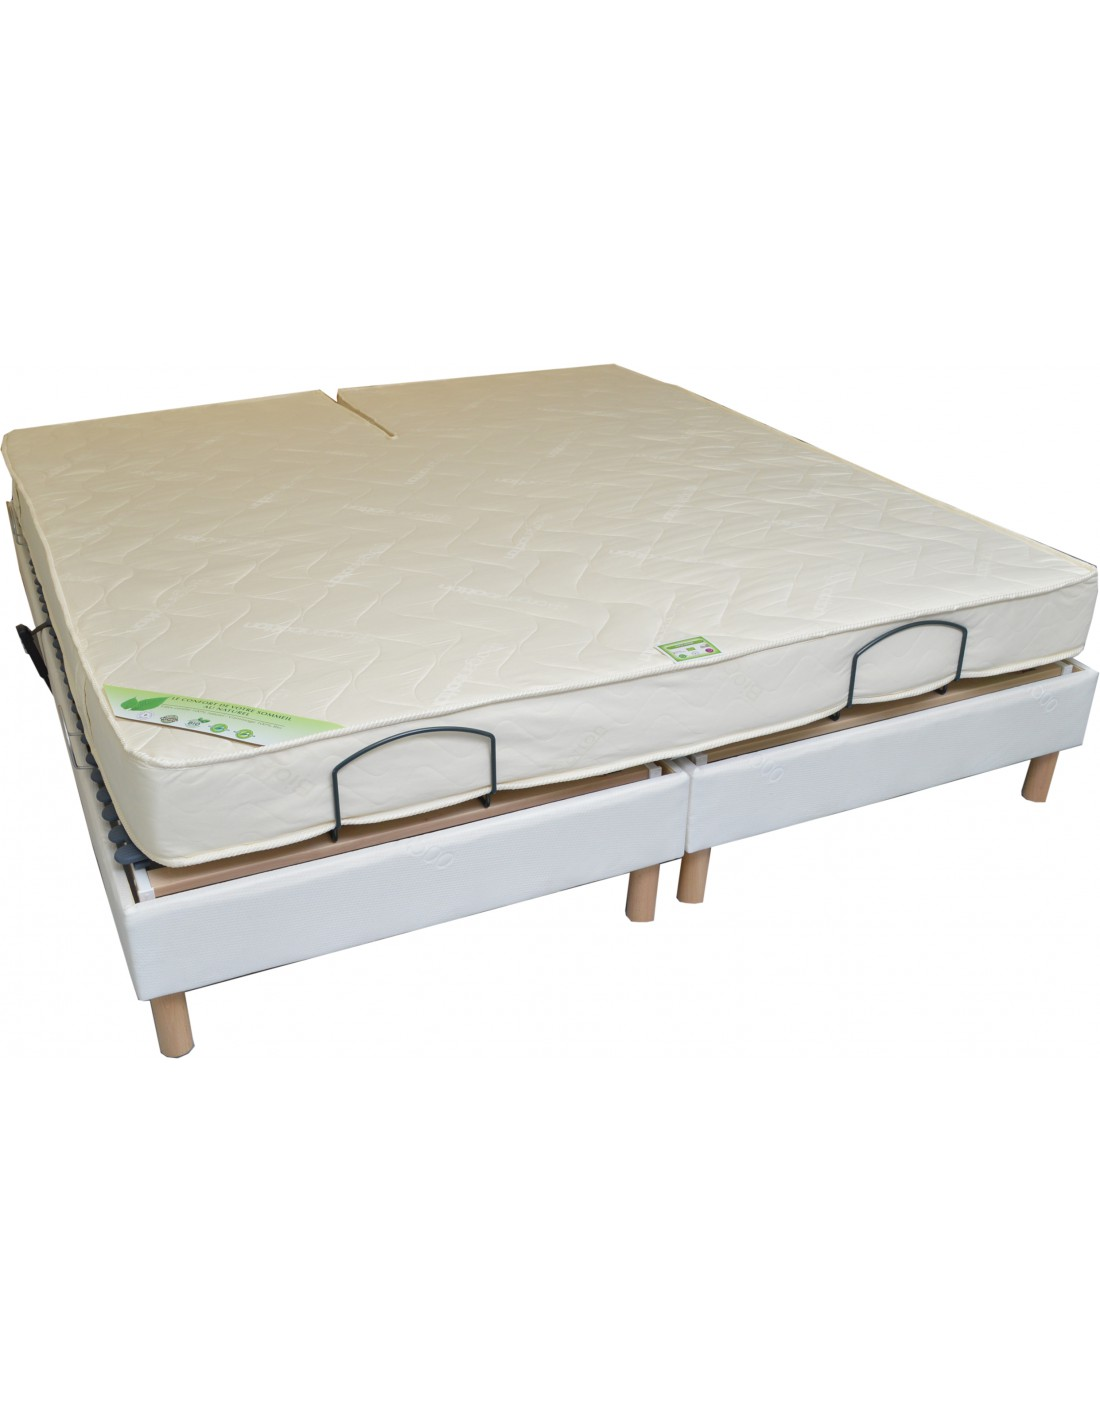 matelas latex naturel 160x200 matelas pirelli bodyzones latex naturel 160x200 acheter un. Black Bedroom Furniture Sets. Home Design Ideas